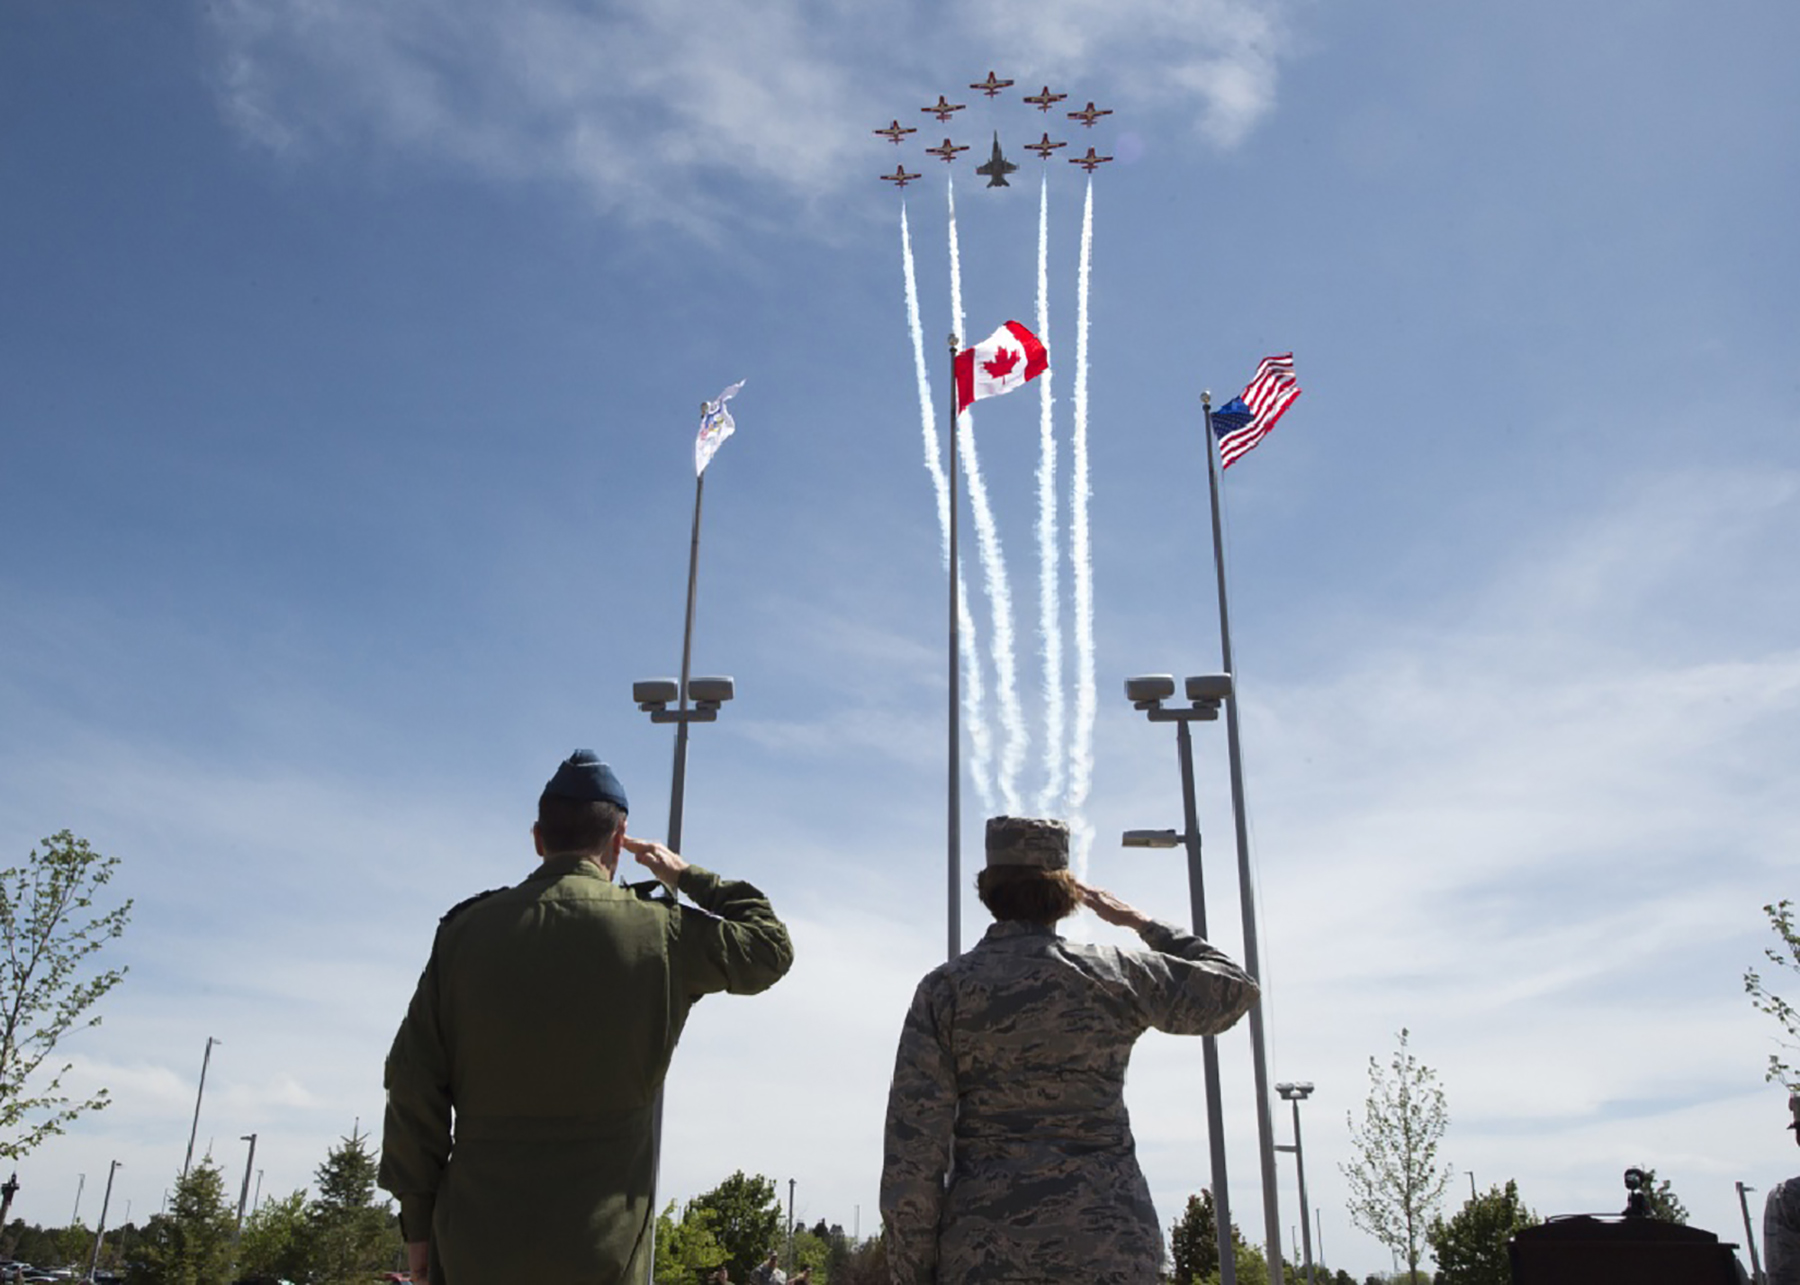 A man and a woman, both in uniform, stand and salute flags as a formation of 10 aircraft flies overhead.